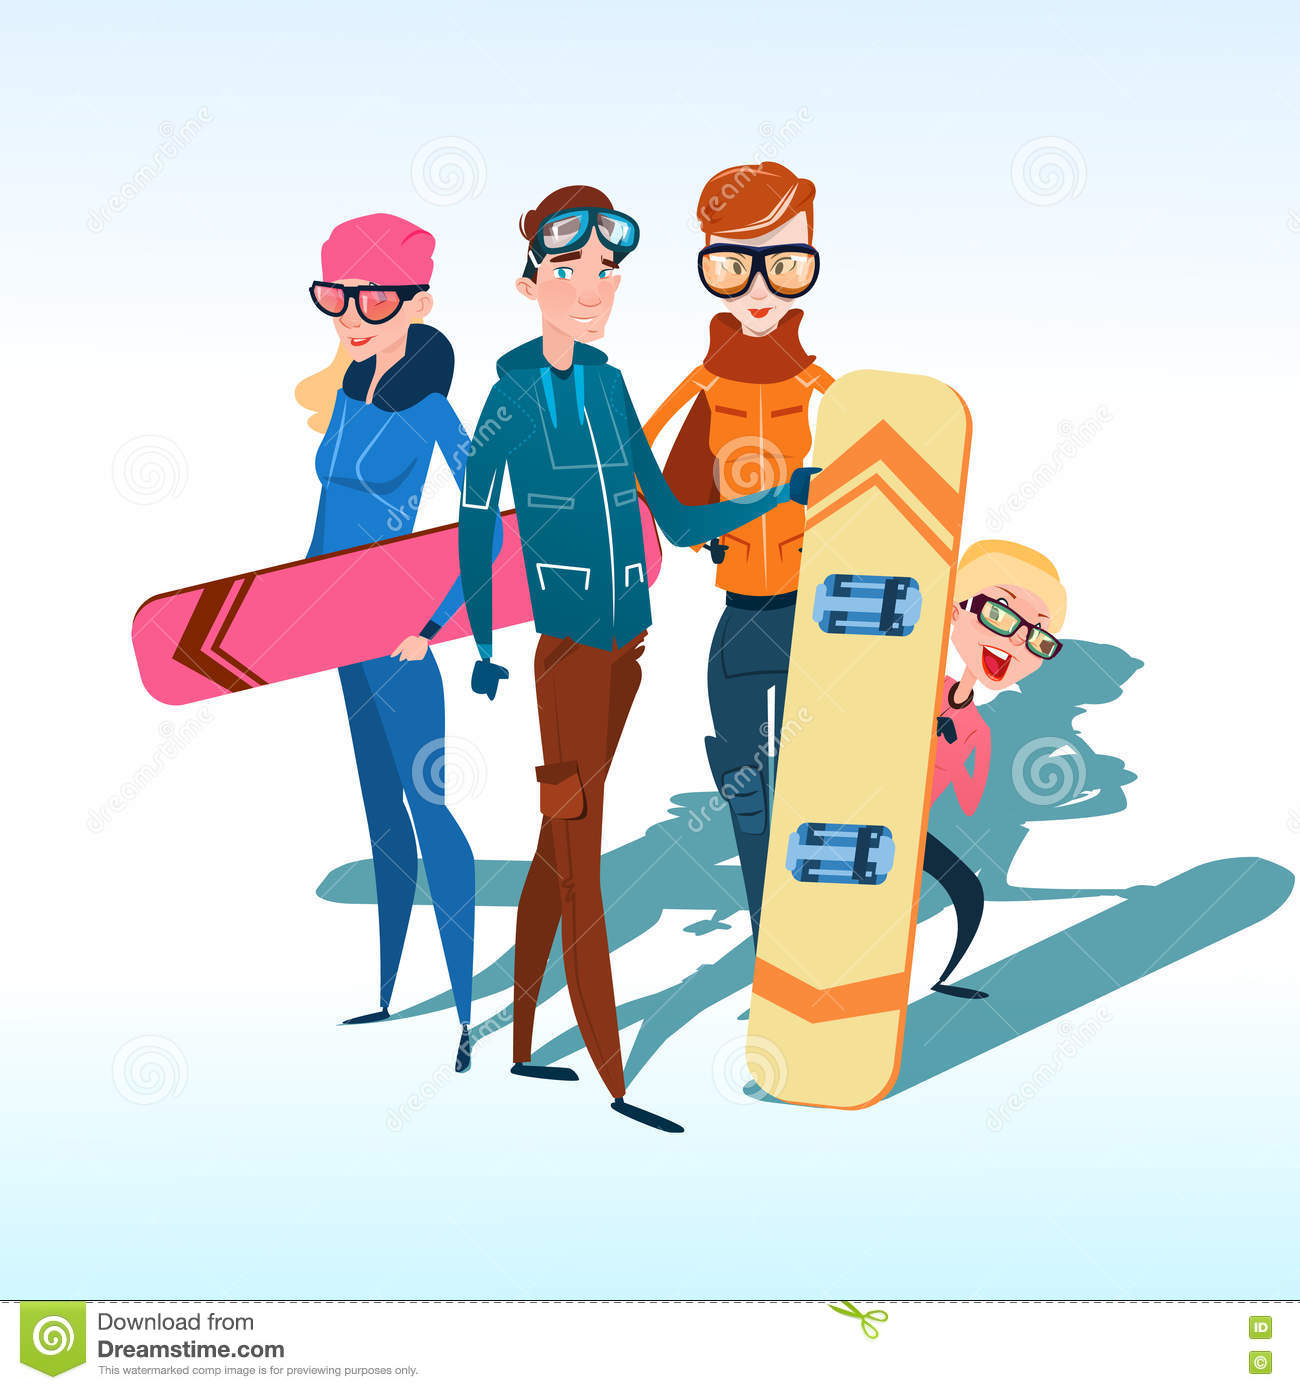 People on snowboard design compositions cartoon vector for Winter design group